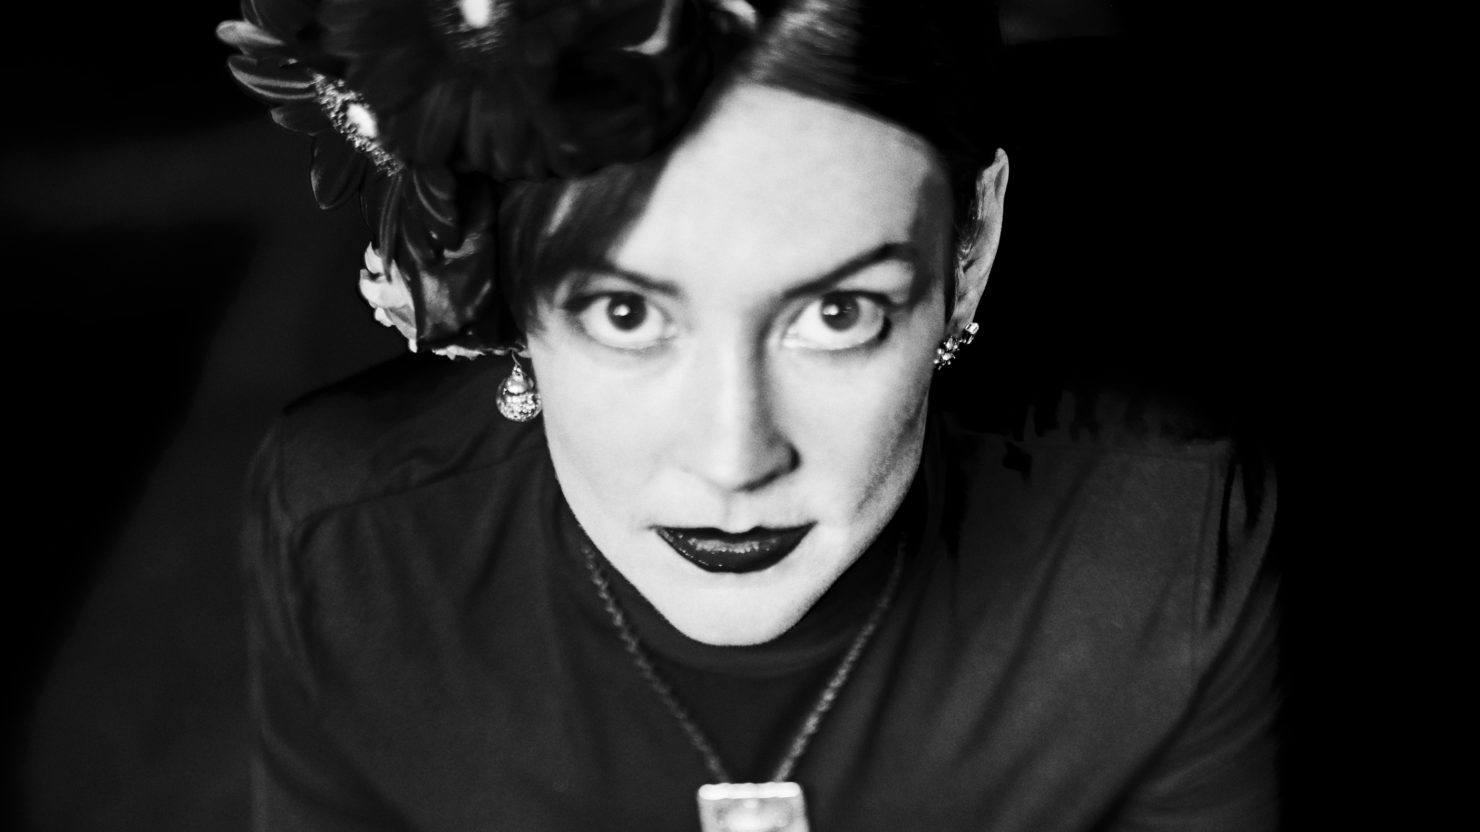 Amanda Shires Tour Dates And Concert Tickets